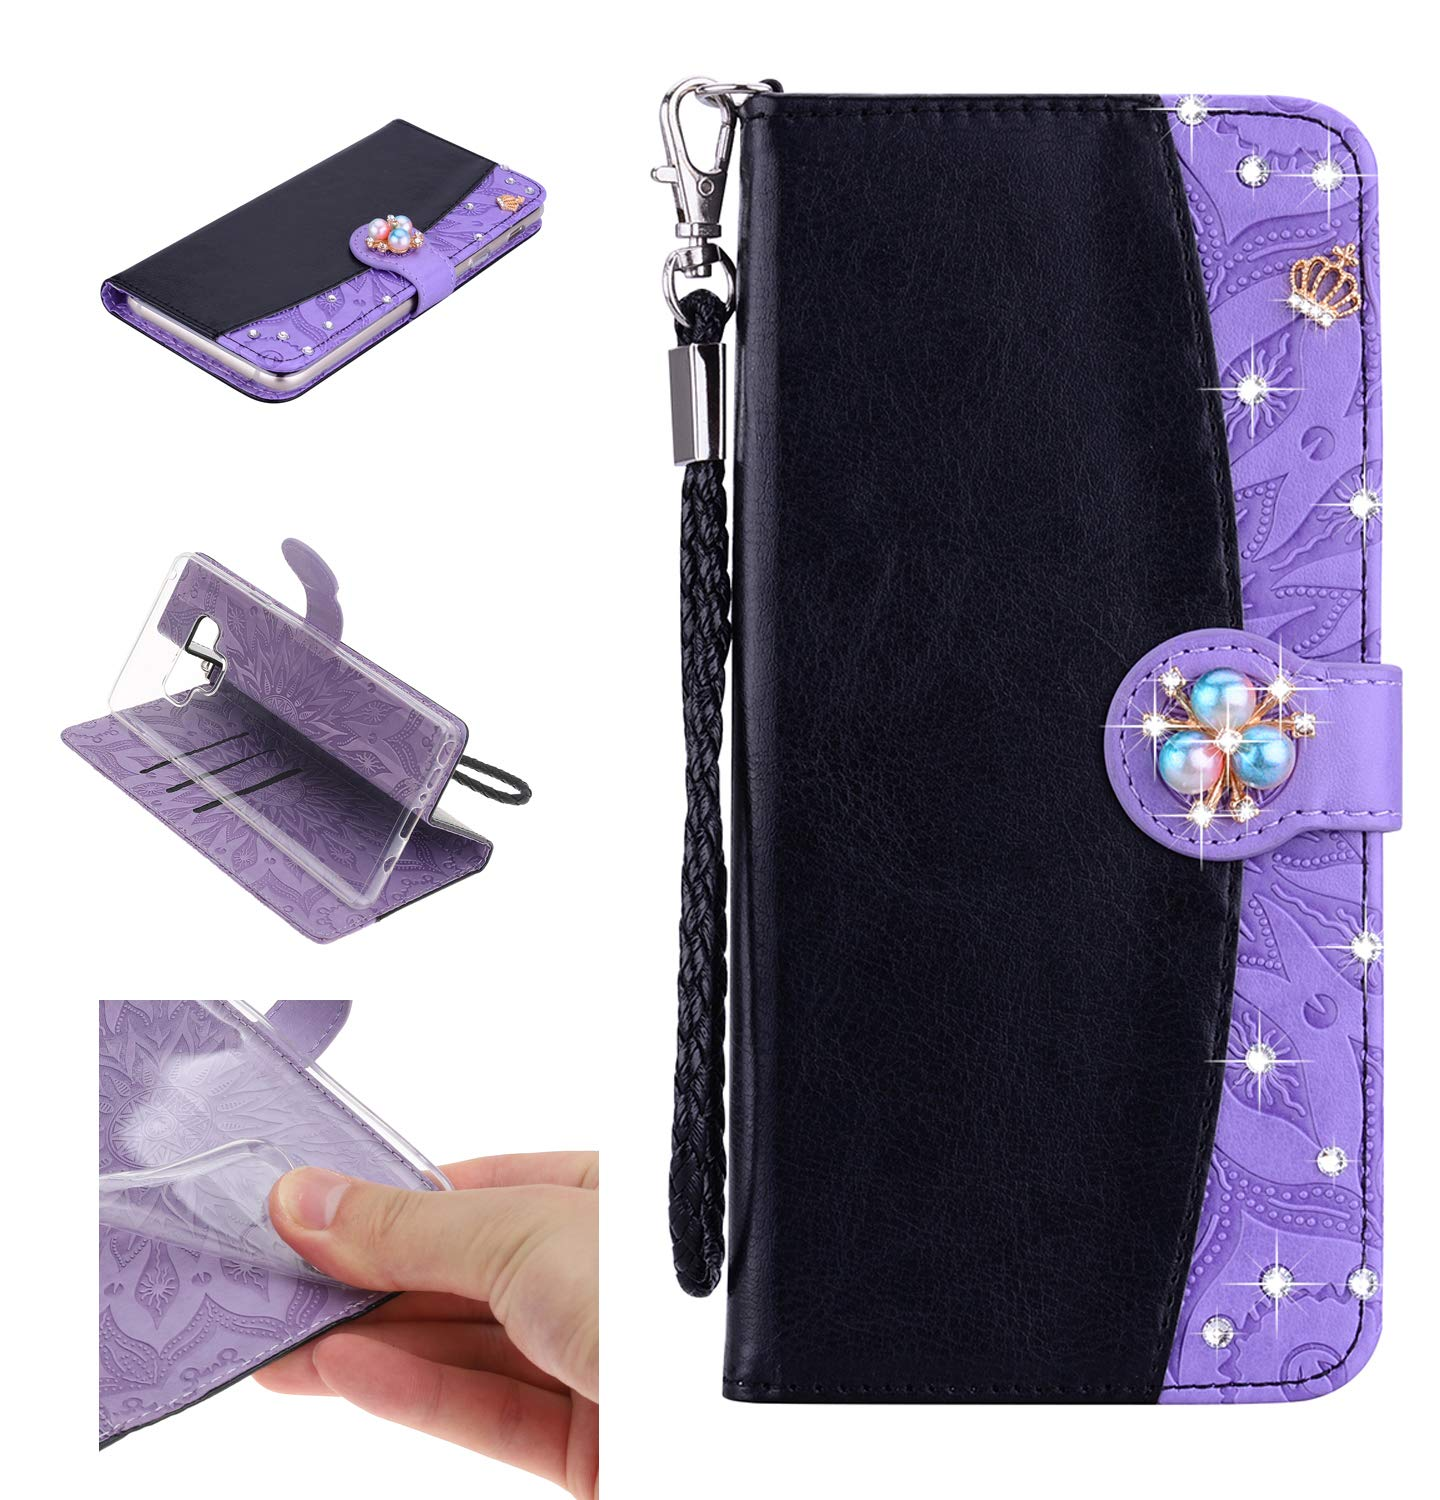 Amocase Strap Wallet Case with 2 in 1 Stylus for Samsung Galaxy Note 9,3D Diamond Crown Color Block Premium Beaded PU Leather Stand Clear Slicone Back Case for Samsung Galaxy Note 9 - Black Purple by Amocase